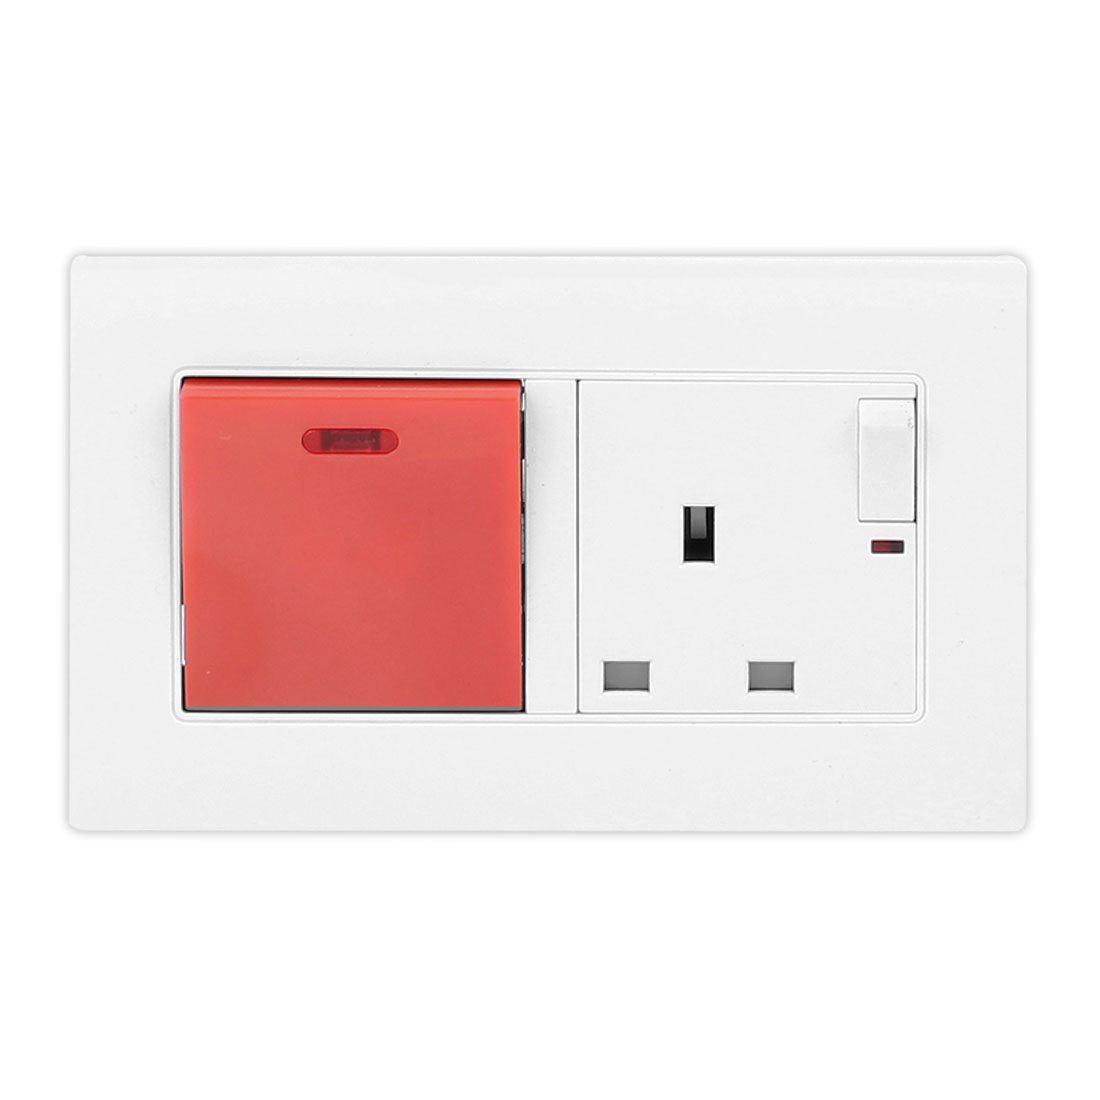 250V 45A Red ON/OFF Big Switch 250V 13A White Wall Socket w Small ON/OFF Switch